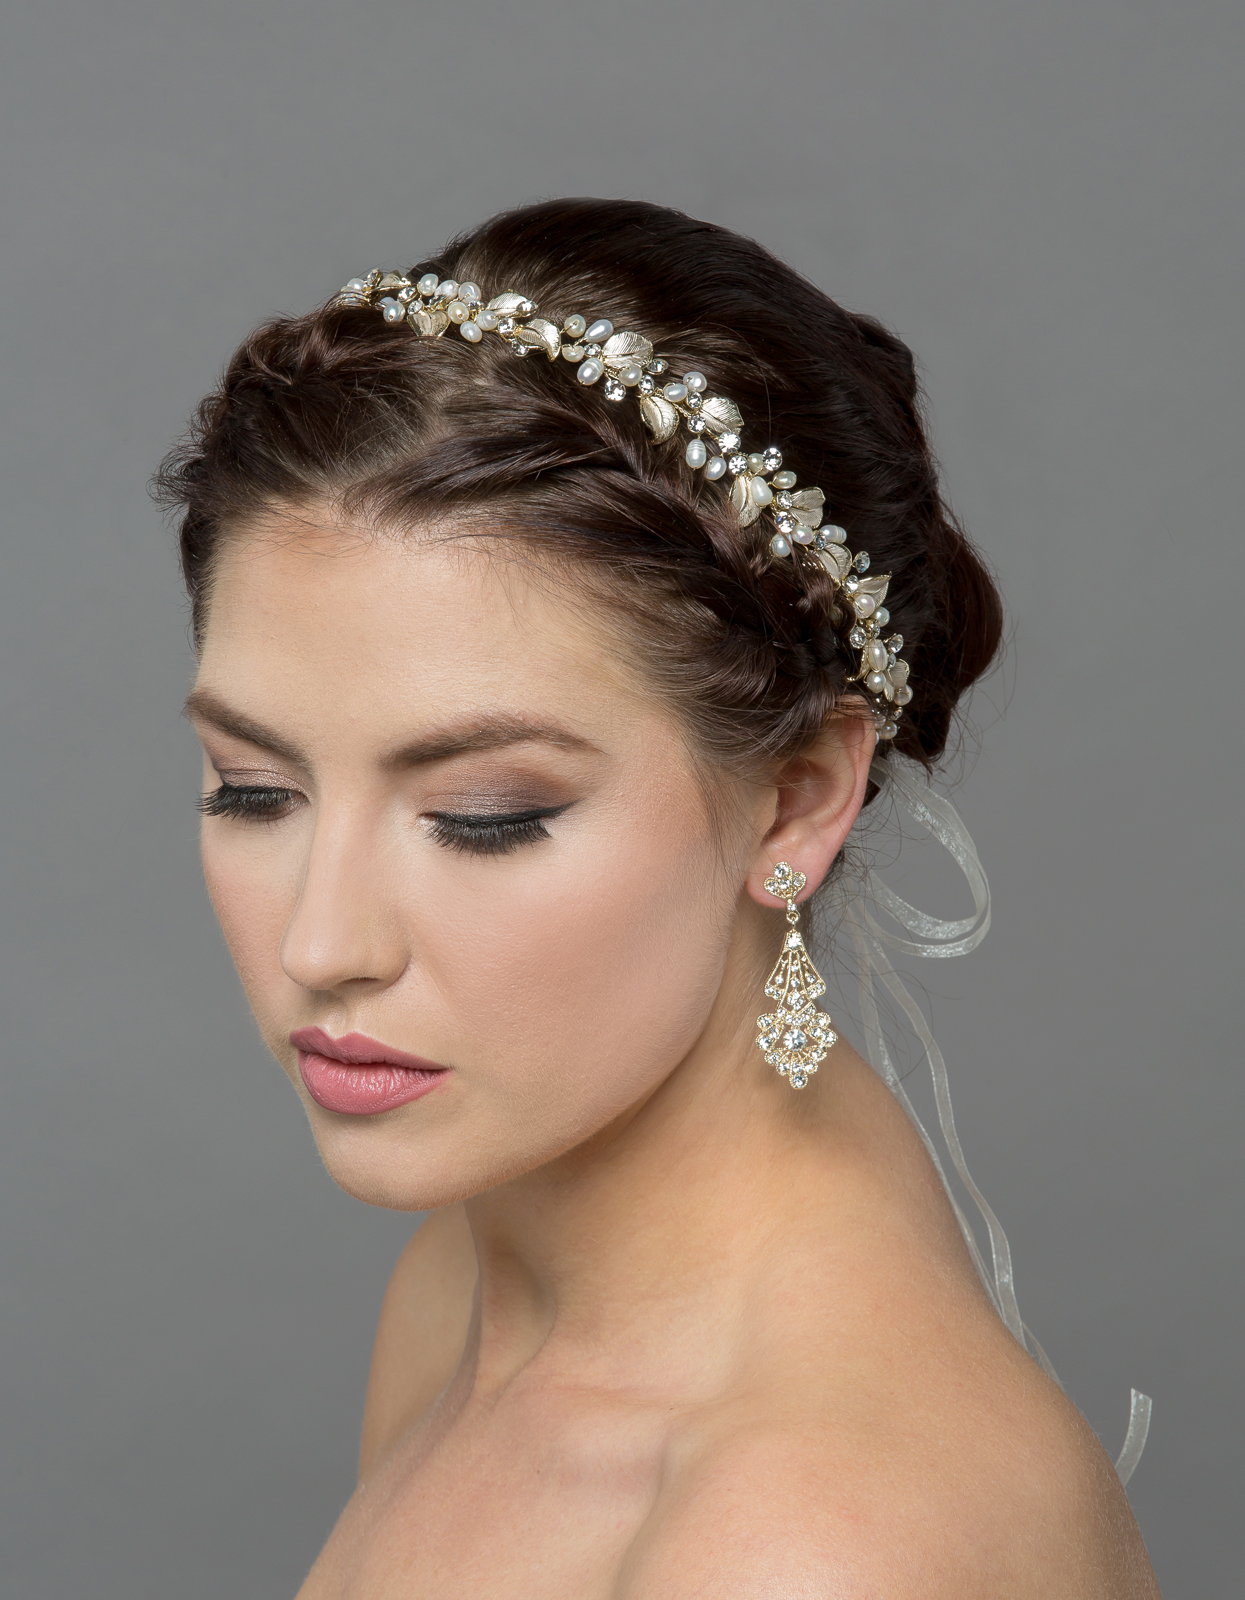 Bridal Classics Headbands & Wreaths HB-7074